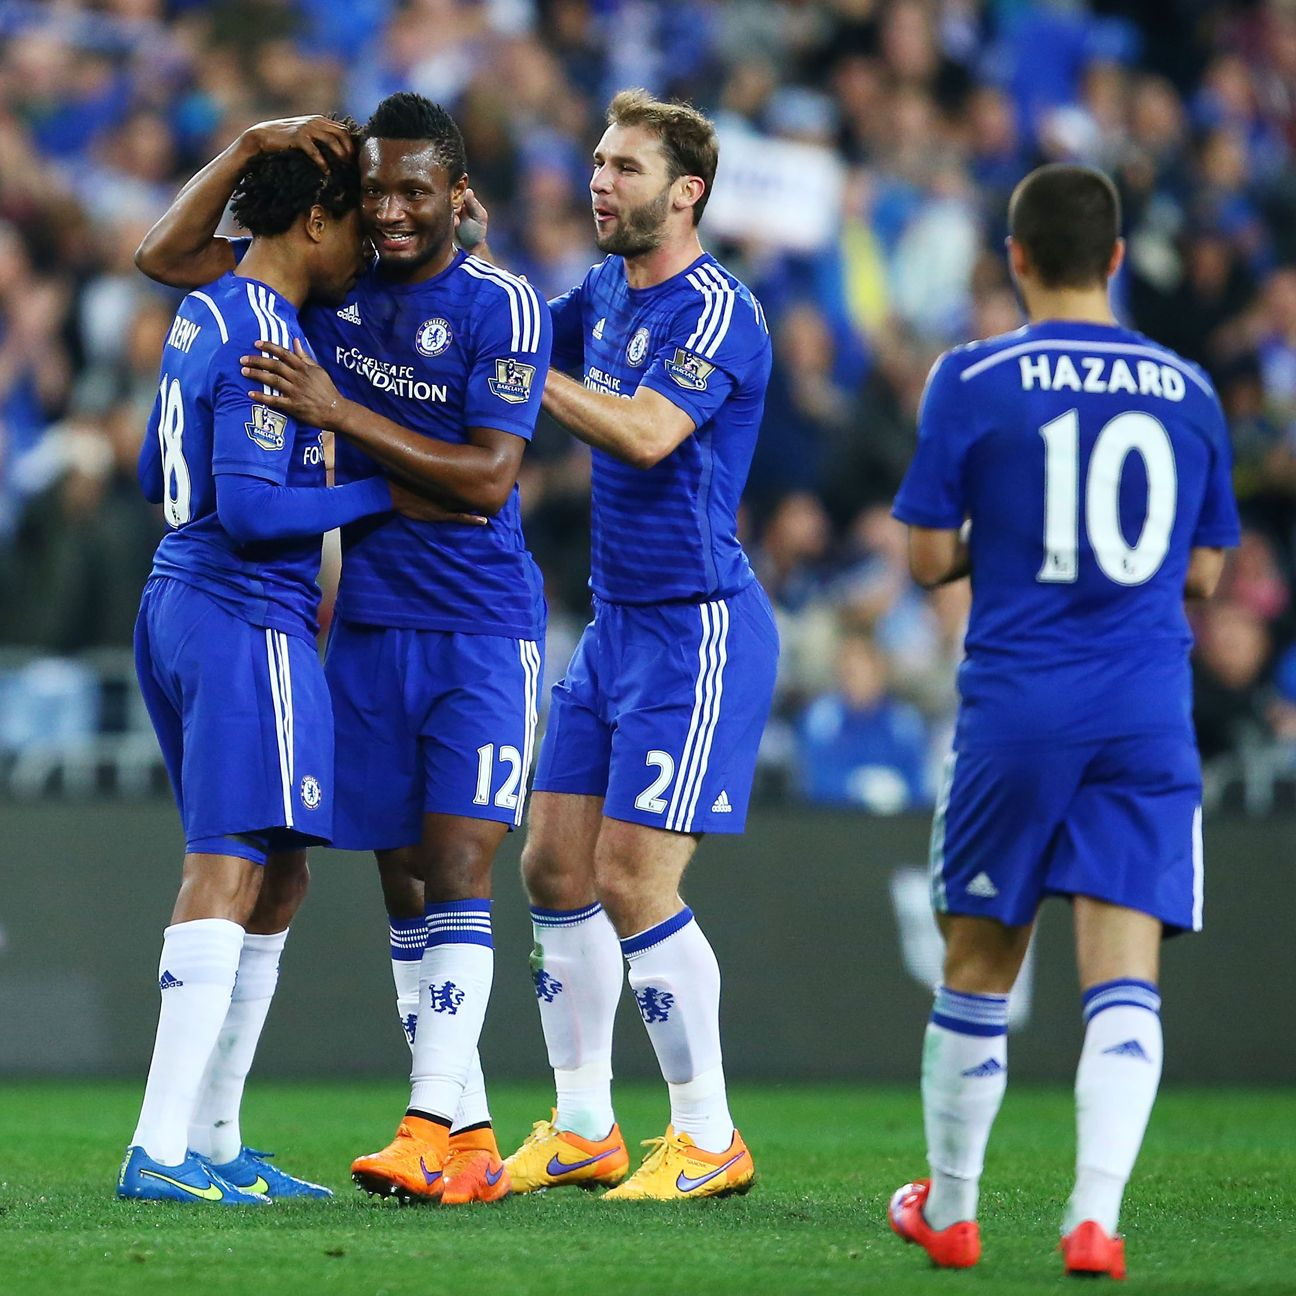 Chelsea are heavy favorites (plus-169) to repeat as Prem champs. But do they represent the best value?